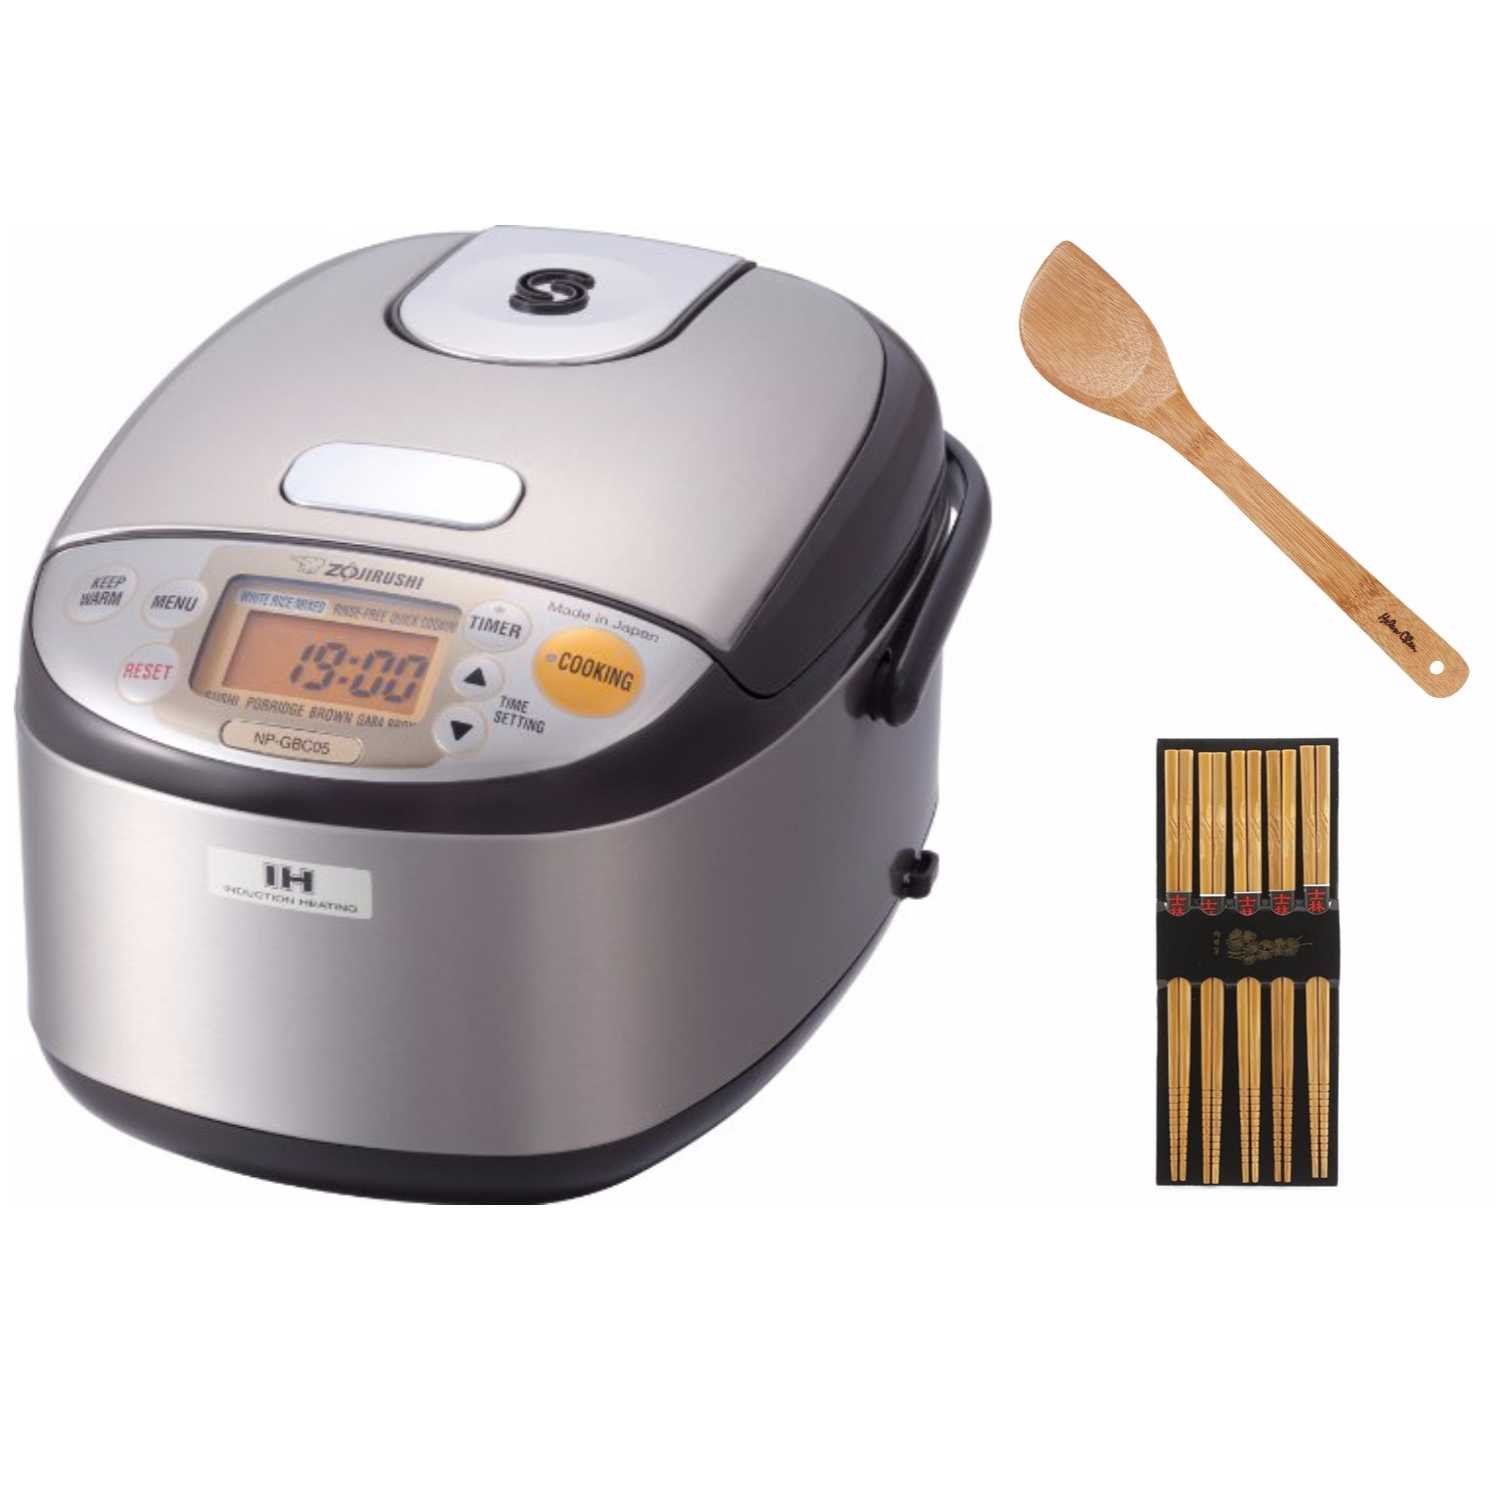 Zojirushi NP-GBC05 Induction Heating System Rice Cooker and Warmer Includes Chopsticks and Spatula